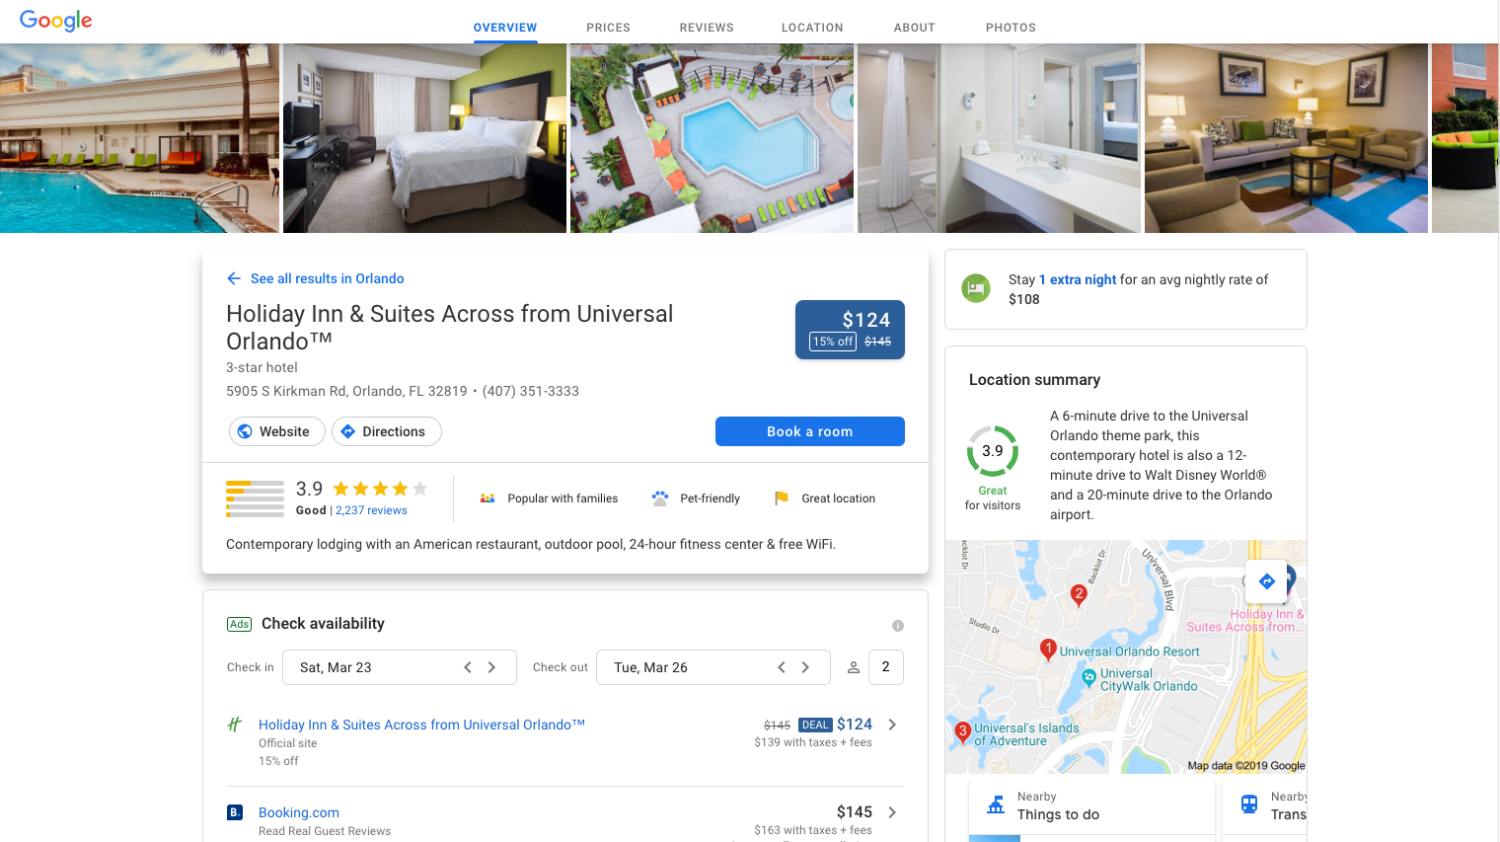 Google Hotel Overview